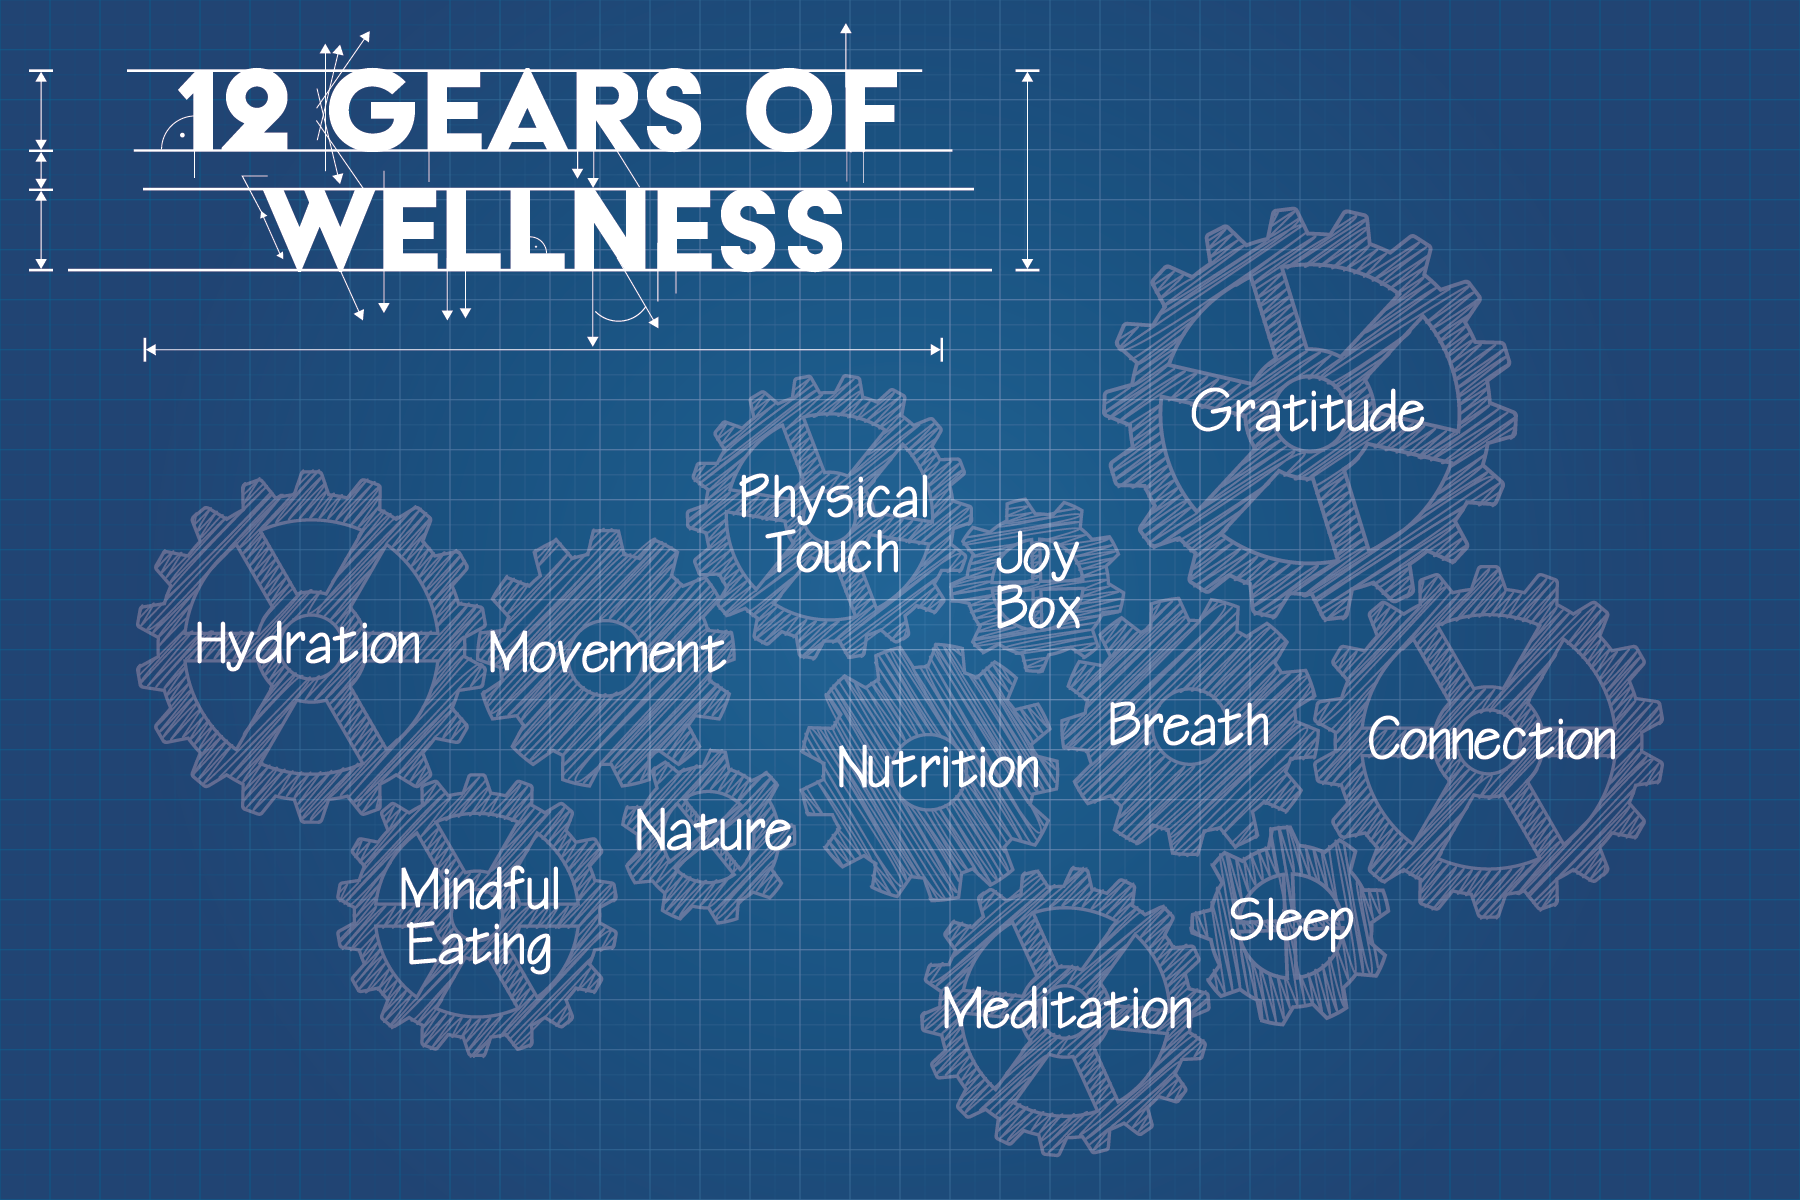 These wellness gears work as a system- if one is off, it affects the others...